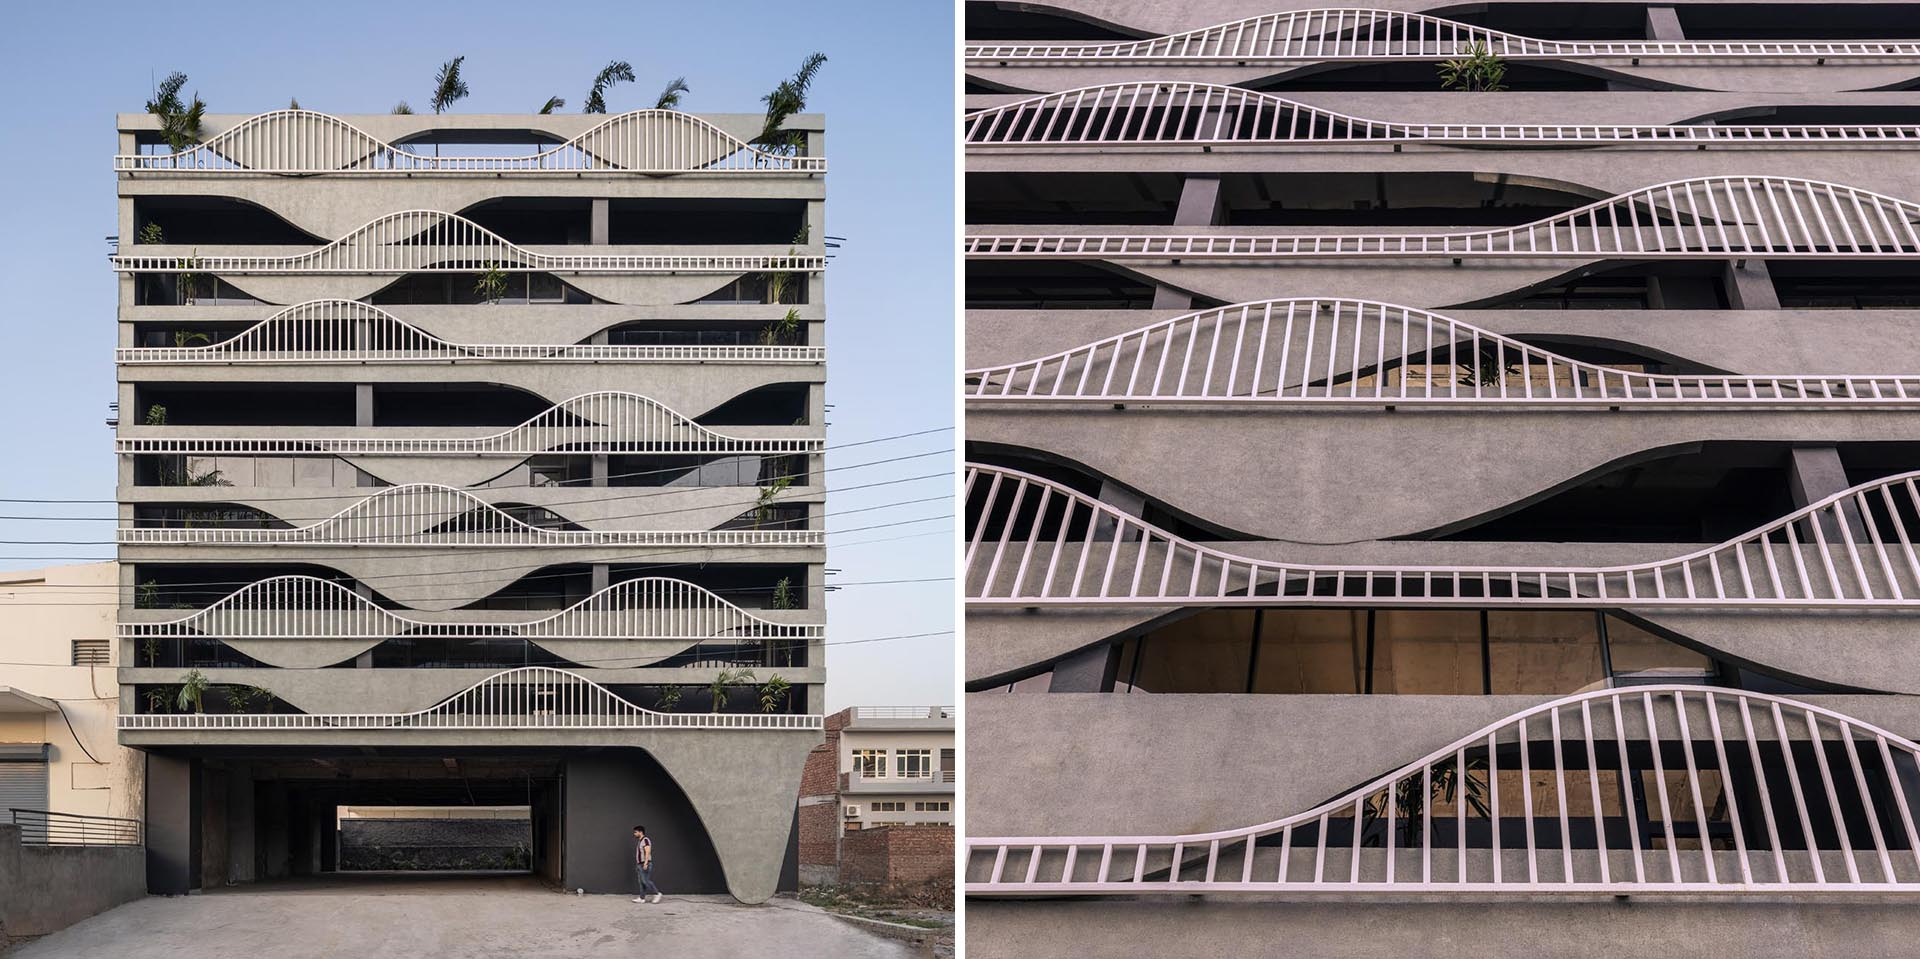 A unique building facade that's designed to look like melting concrete.